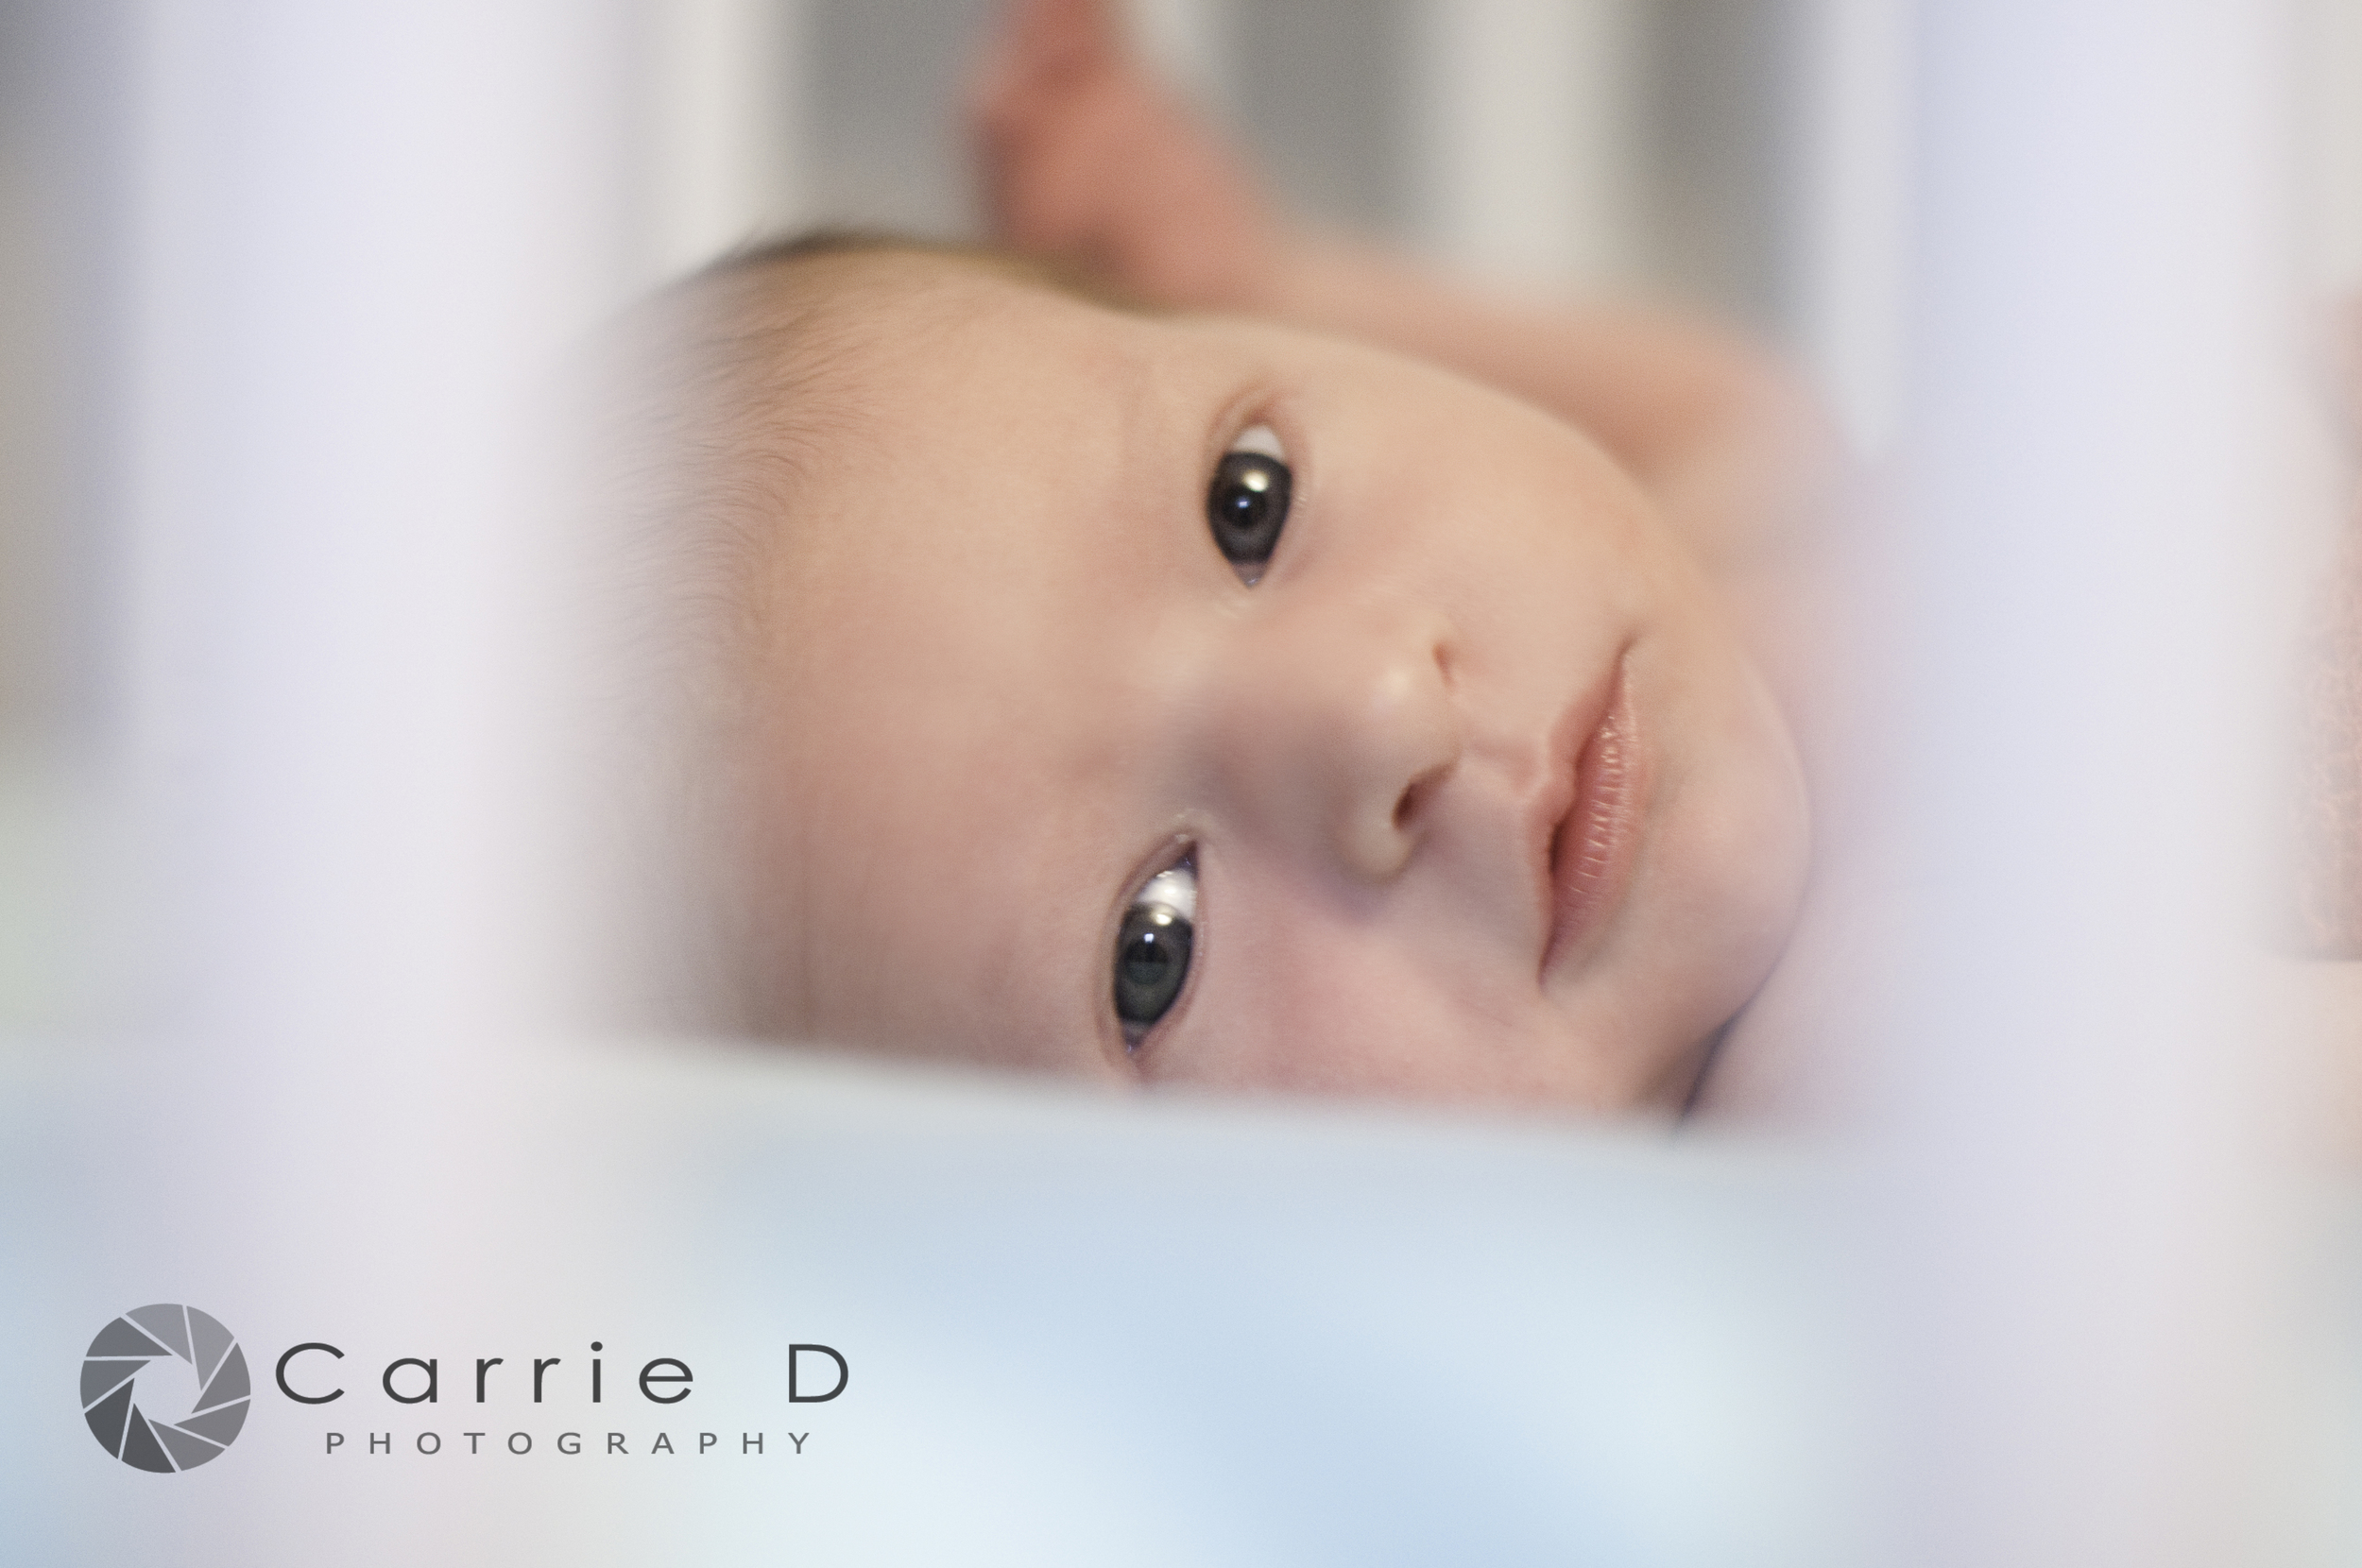 Harford County Newborn Photographer - Harford County Maryland Newborn Photographer - Harford County Natural Light Newborn Photographer - Harford County Maryland Natural Light Newborn Photographer - Maryland Newborn Photographer - Maryland Natural Light Photographer - Natural Light Newborn Photography - Newborn Poses - Newborn Photographer